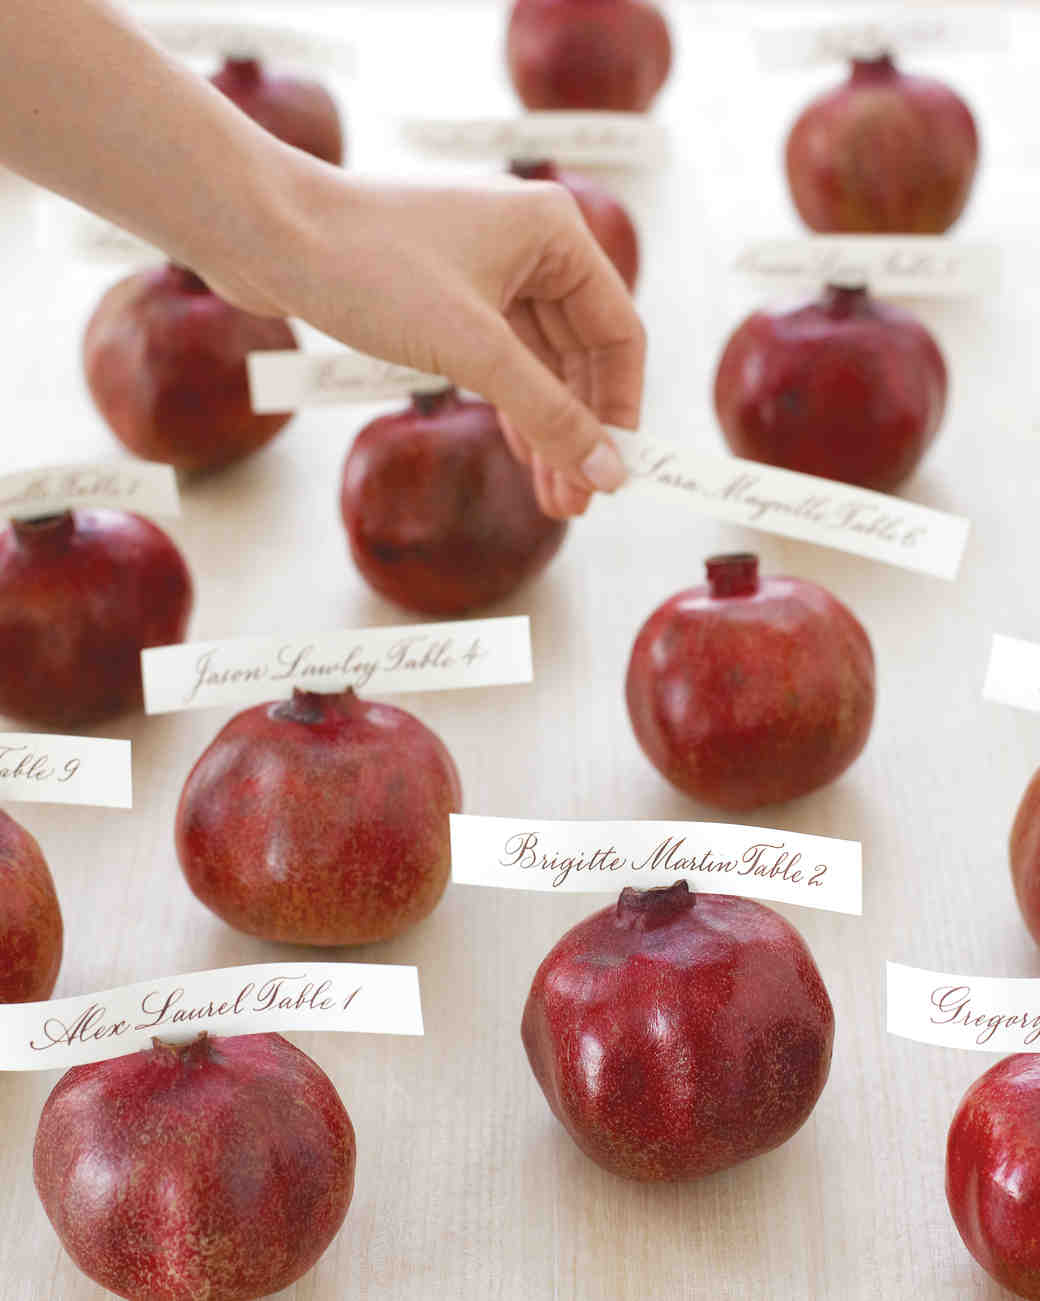 Do it yourself wedding place card holder ideas 100 images easy wedding place card ideas diy picture ideas references do solutioingenieria Images